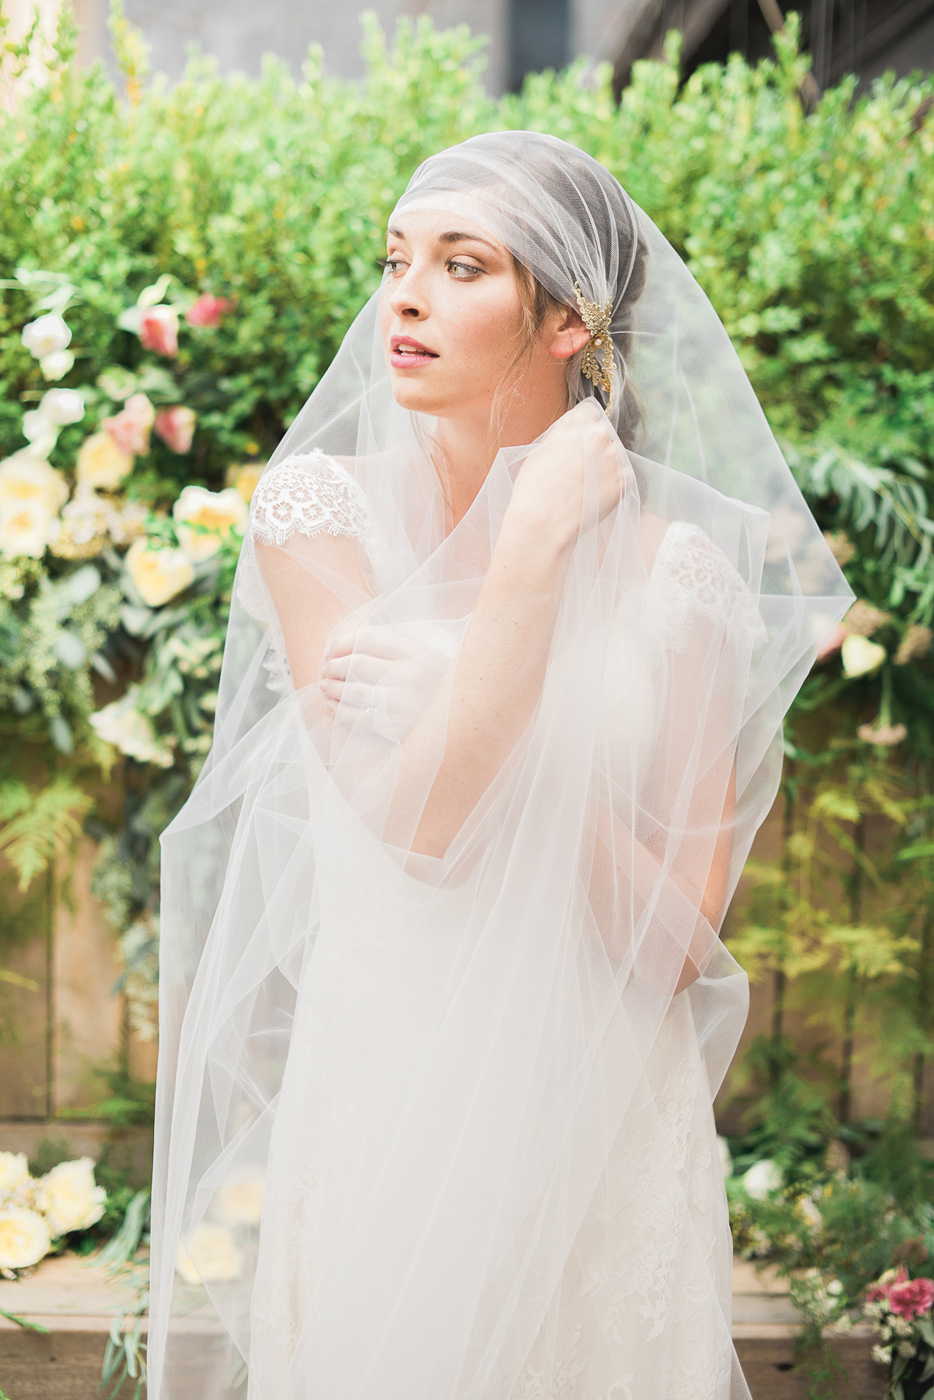 juliet cap tulle veil with gold vine flower crystal detail lace gown hushed commotionjuliet cap tulle veil with gold vine flower crystal detail  hushed commotion